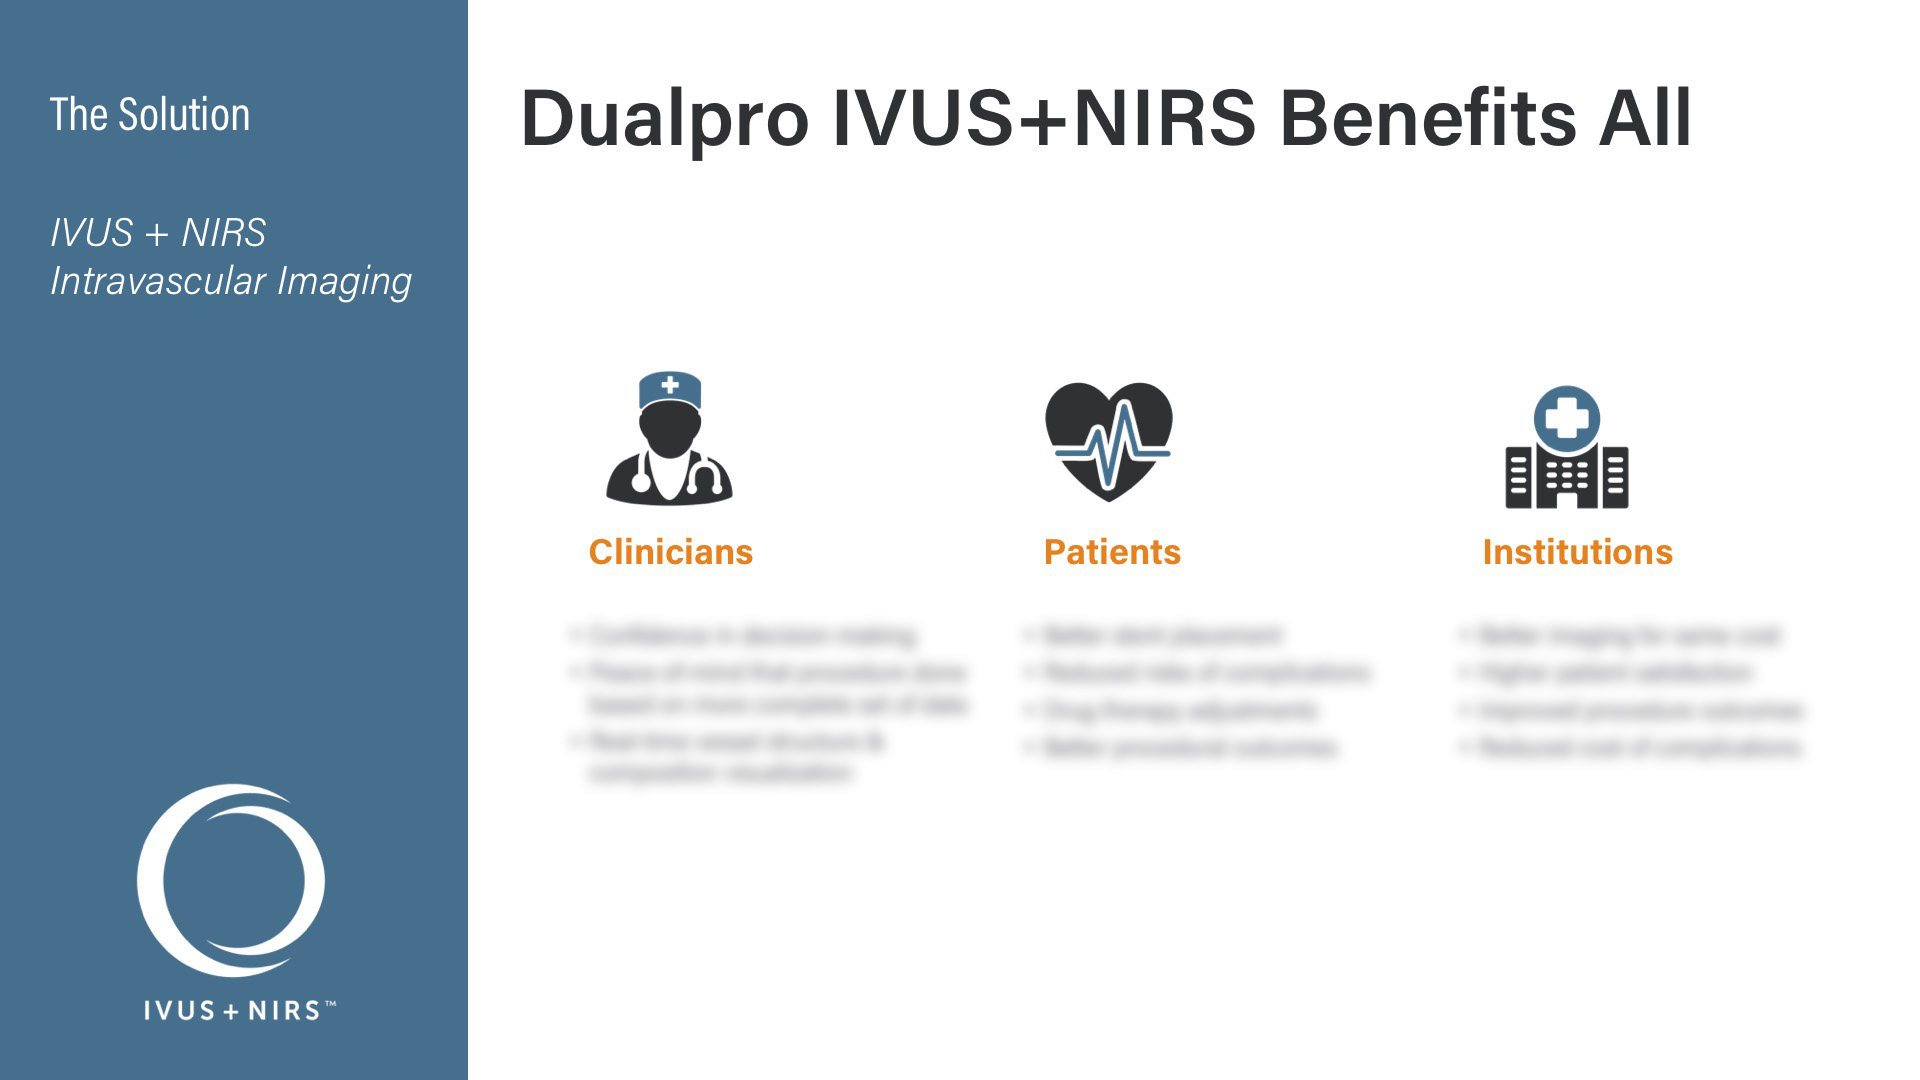 Infraredx Corporate Deck - Solution - Dualpro IVUS+NIRS Benefits All